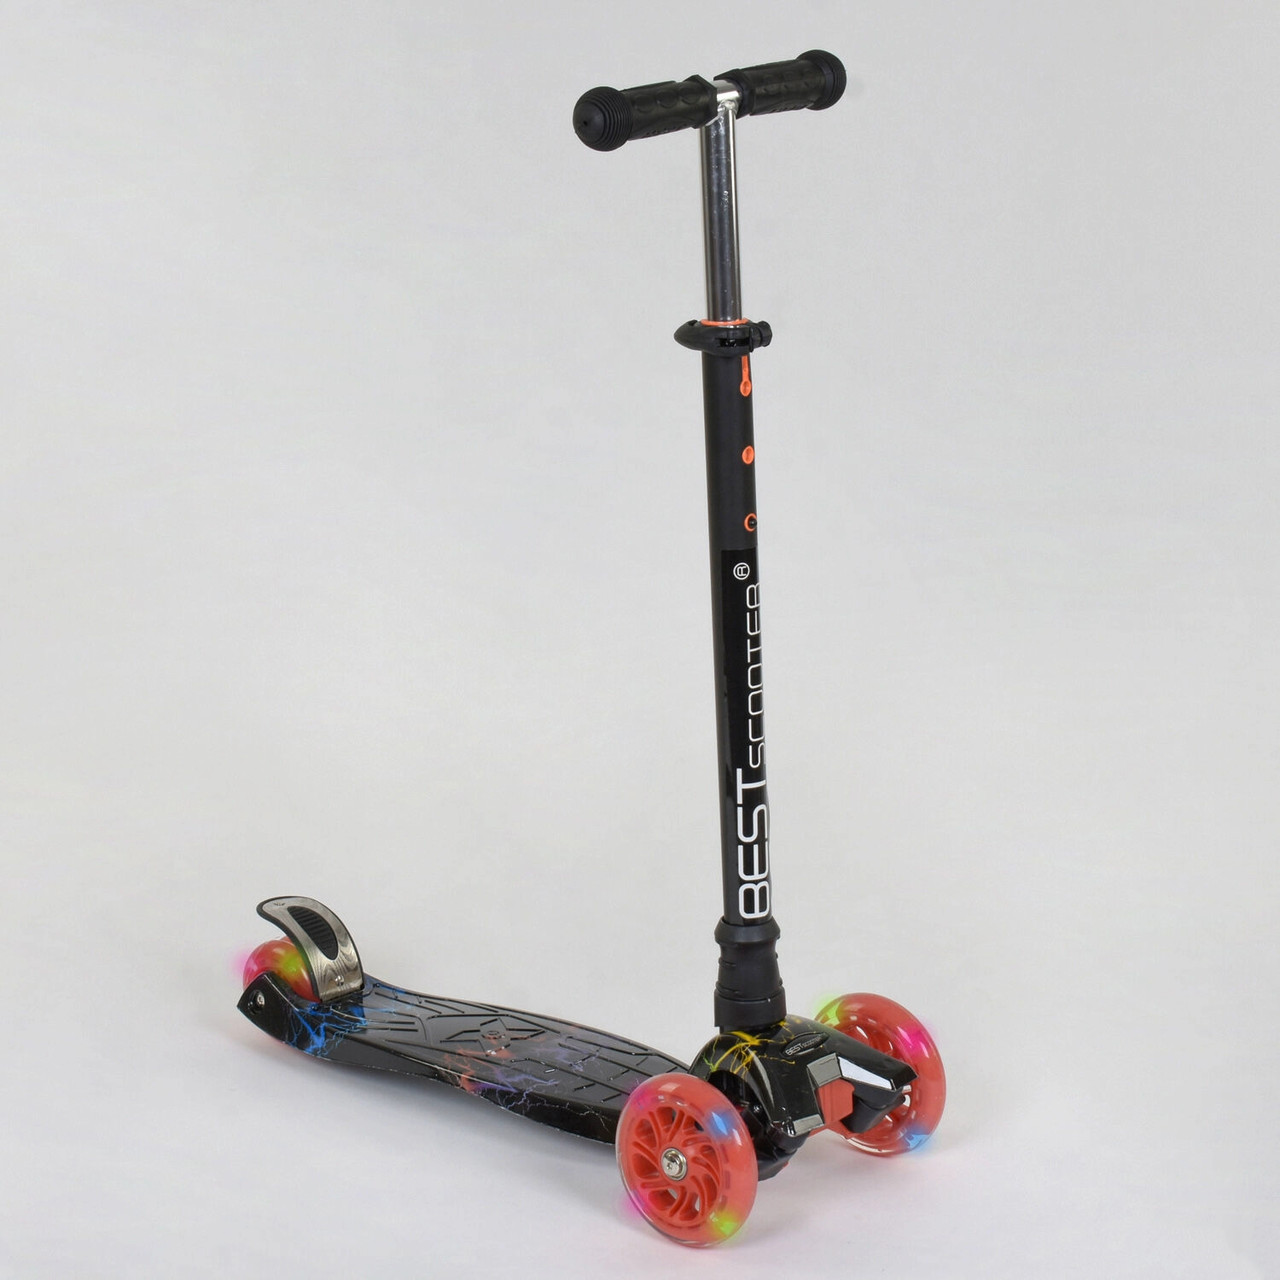 Самокат Best Scooter Maxi А 24659 /779-1308